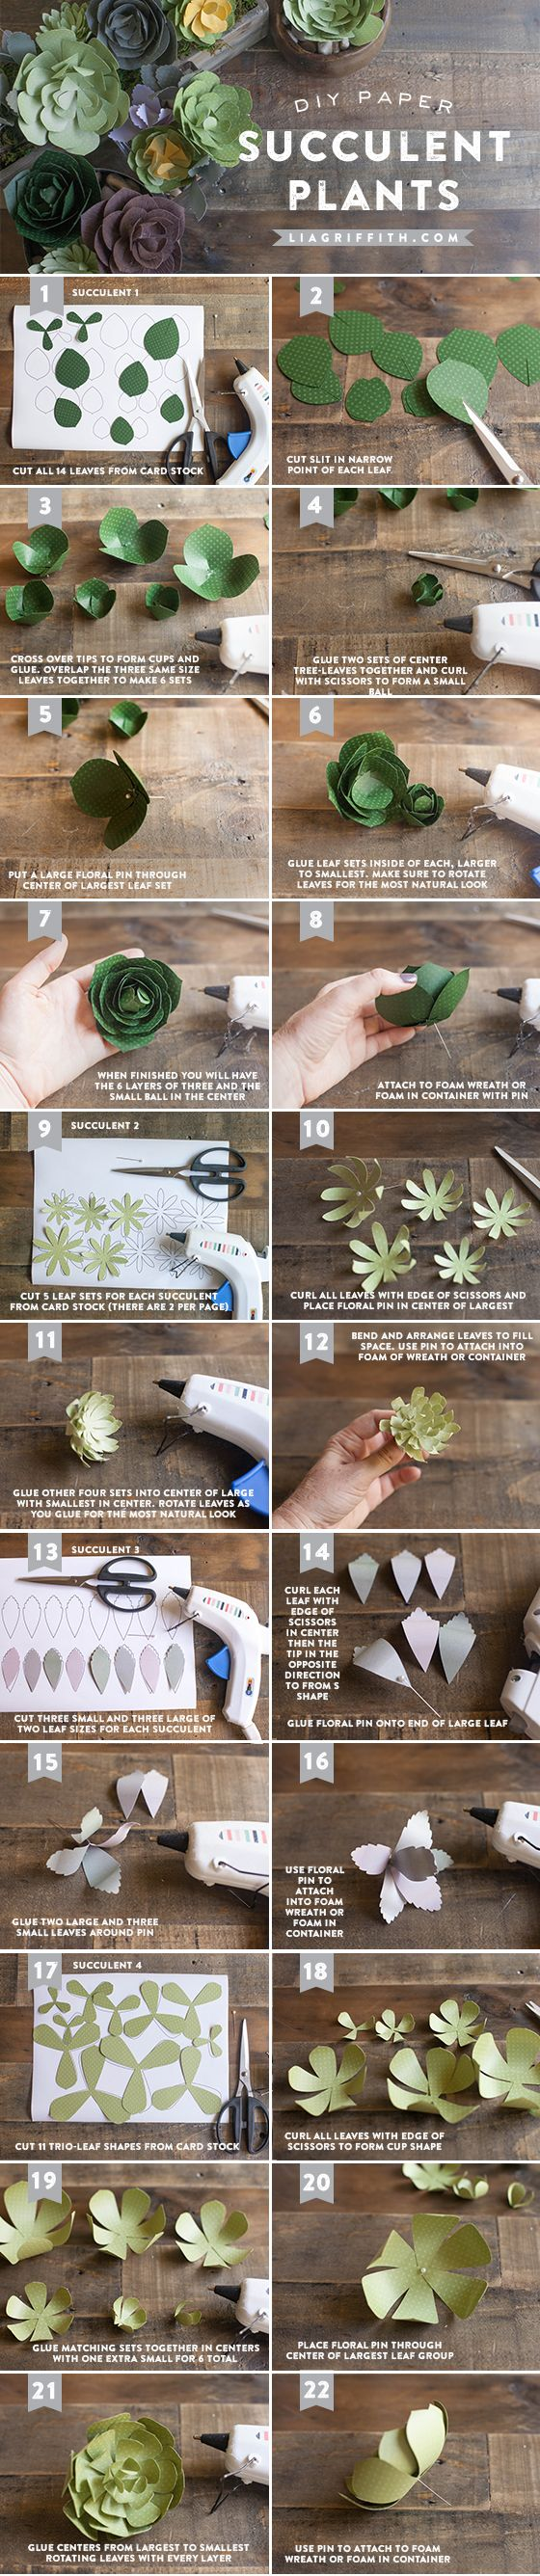 diy paper succulents